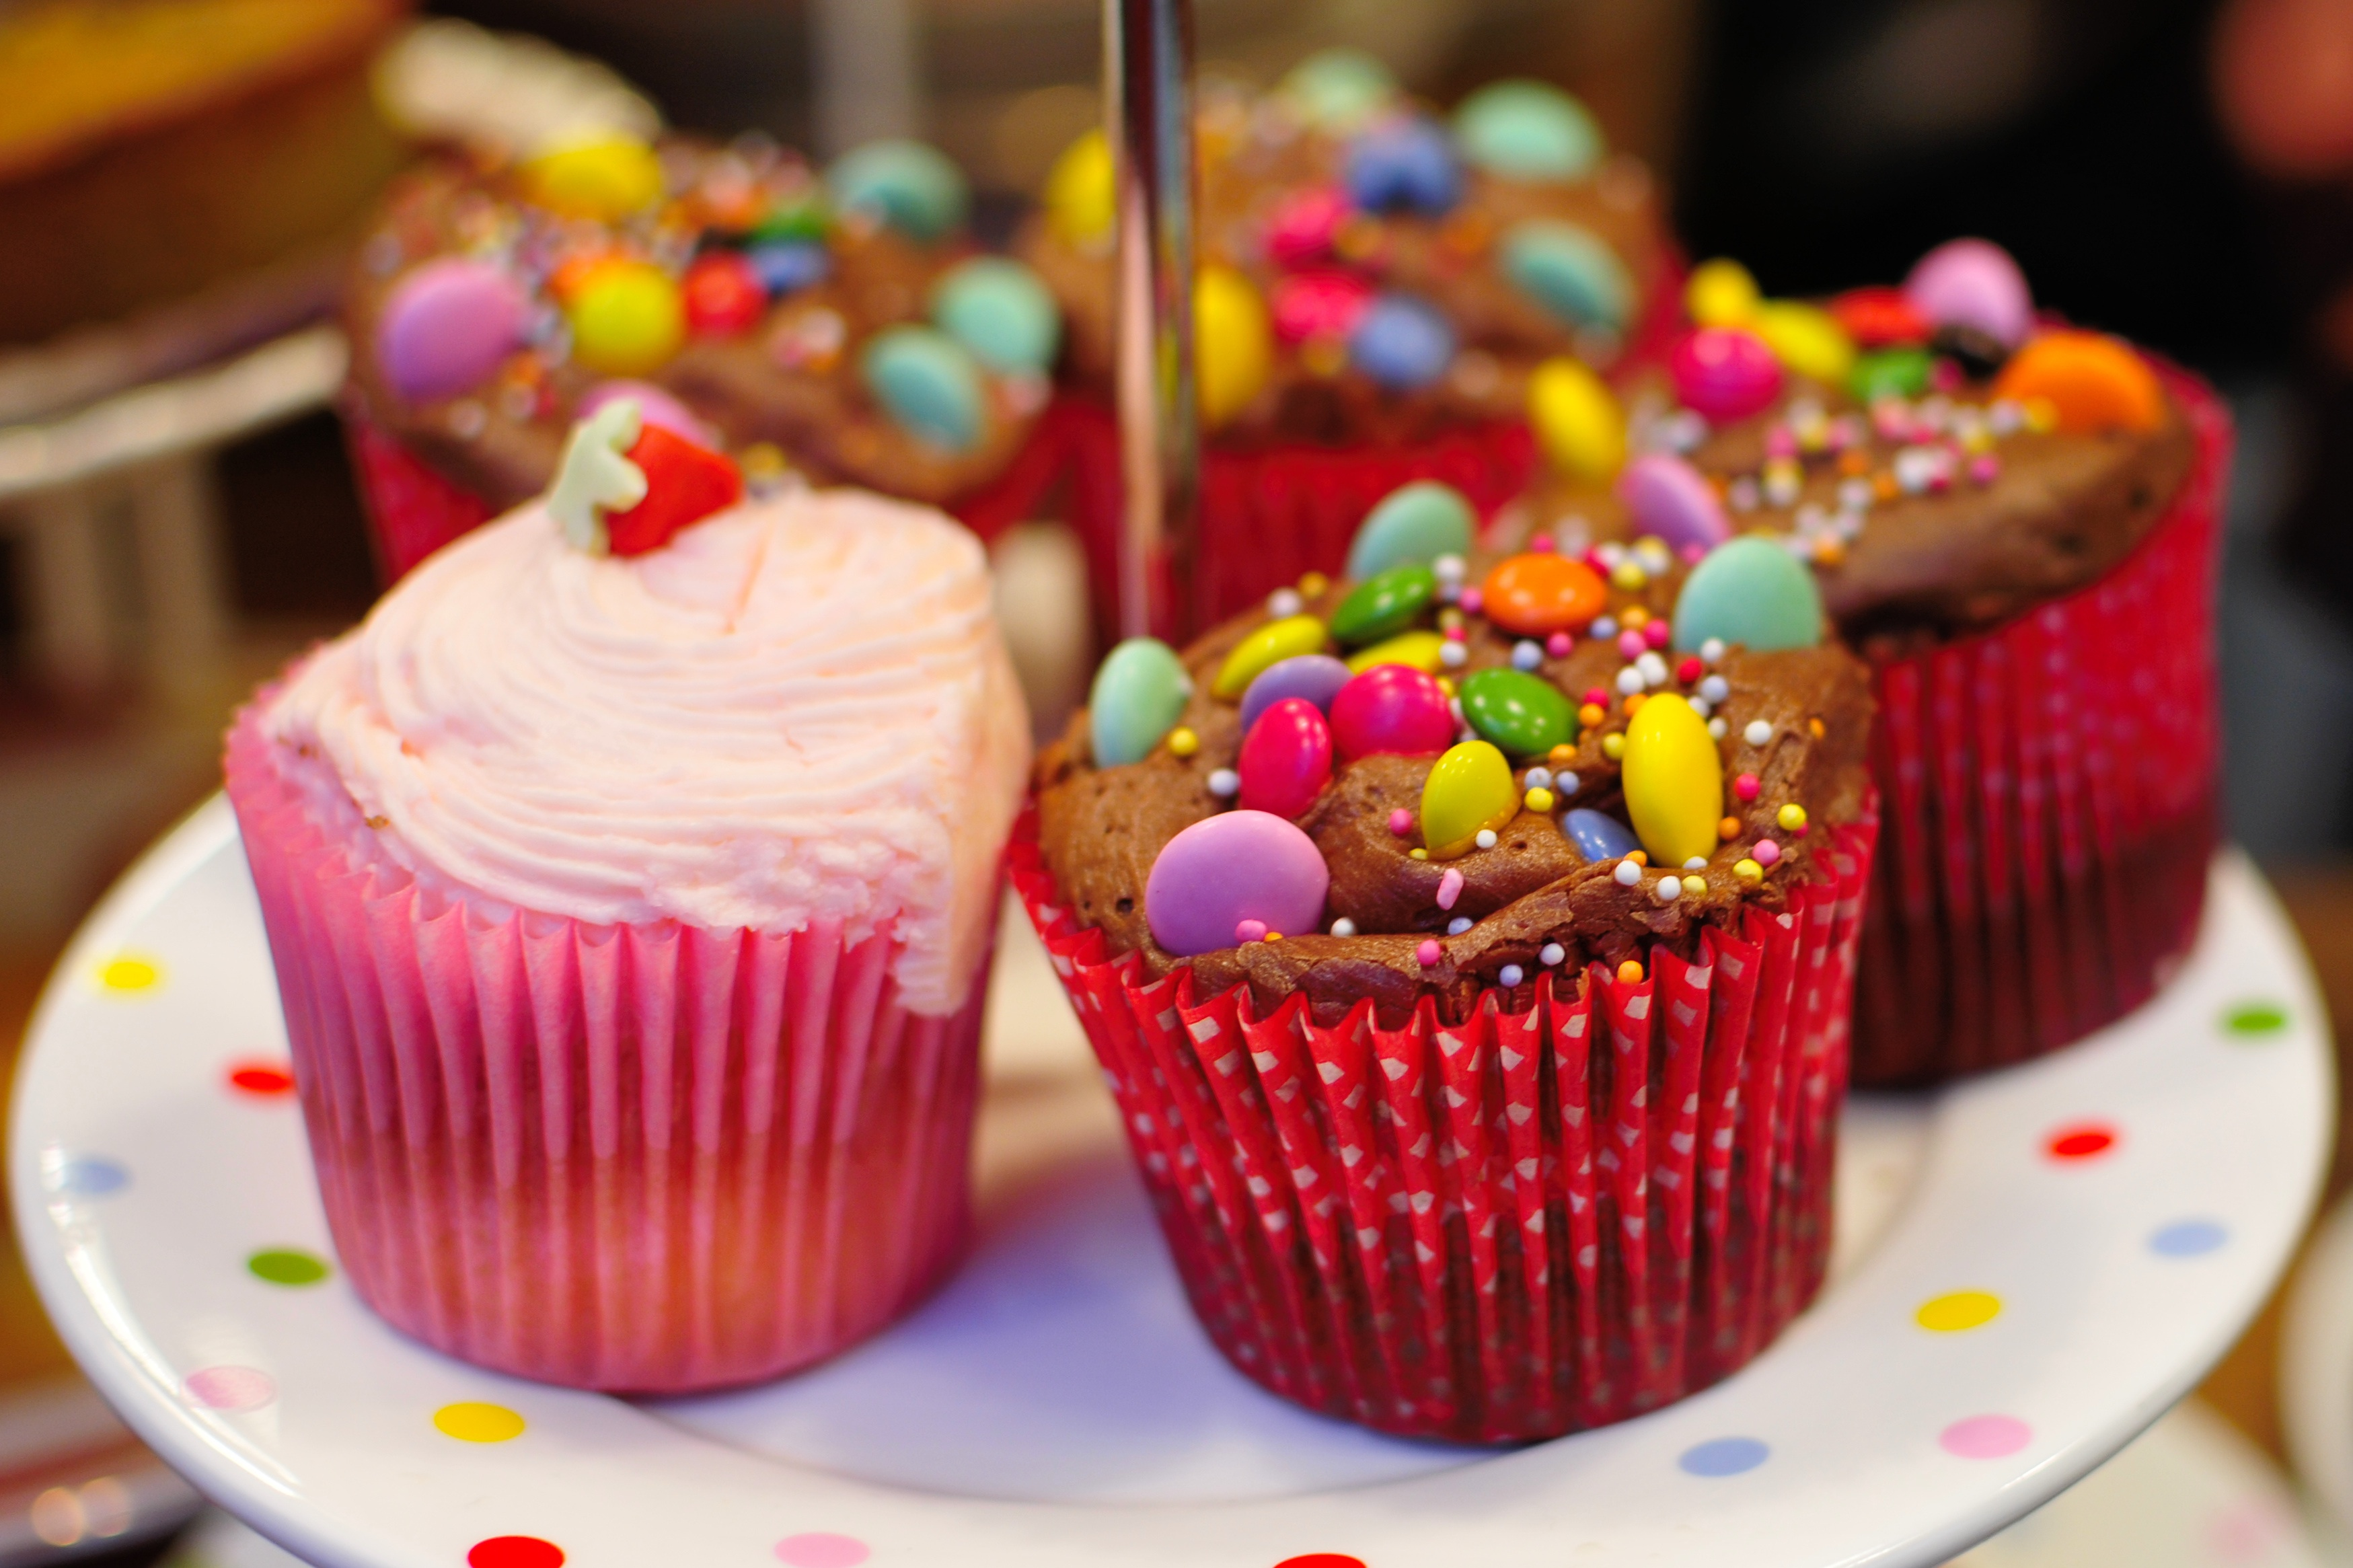 10 tips for stress-free baking with children